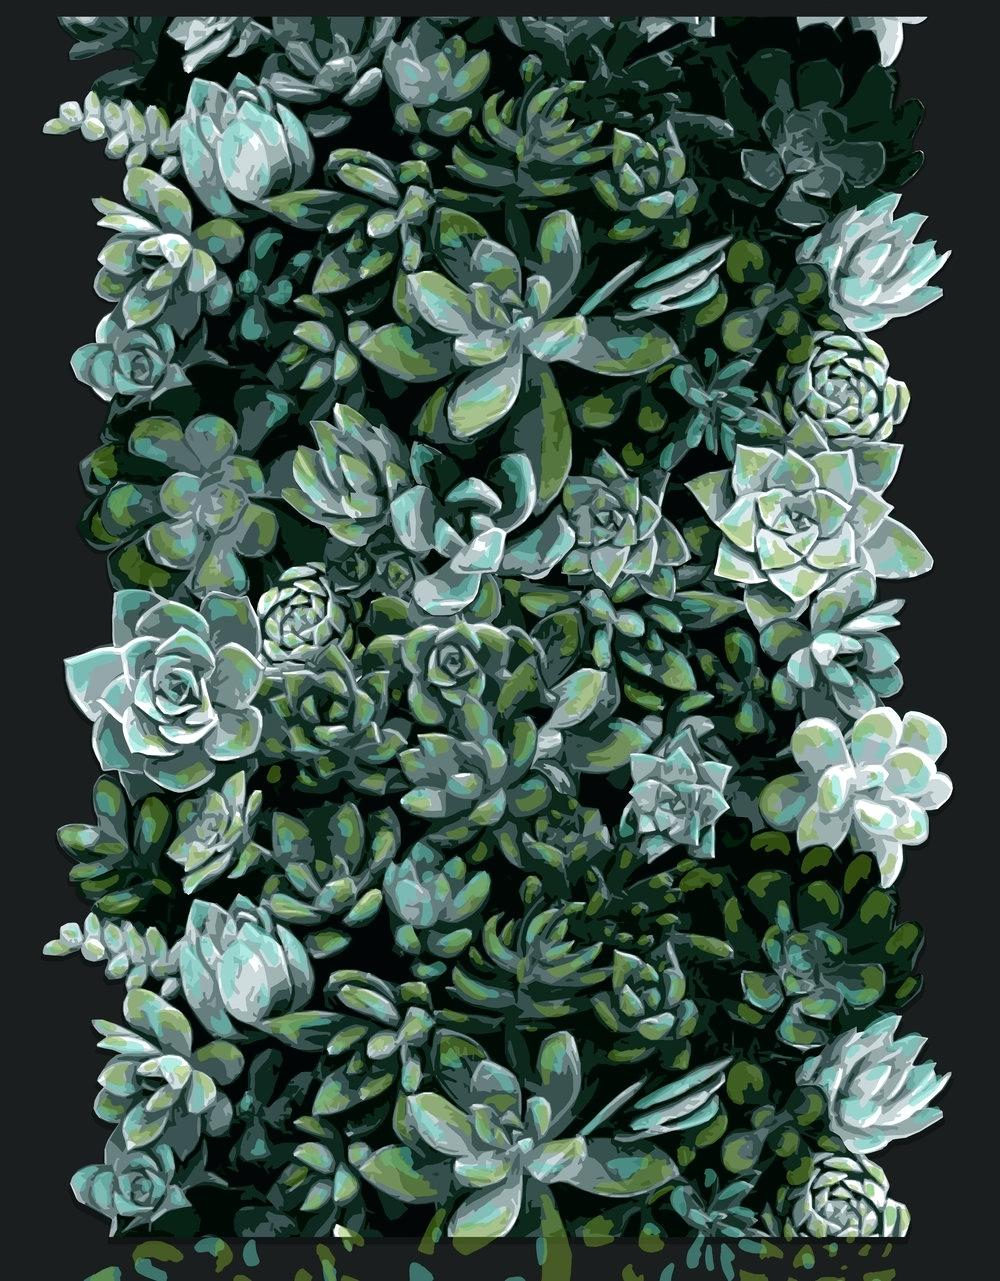 Succulent Phone Wallpapers Phone Backgrounds Succulents 1000x1281 Wallpaper Teahub Io